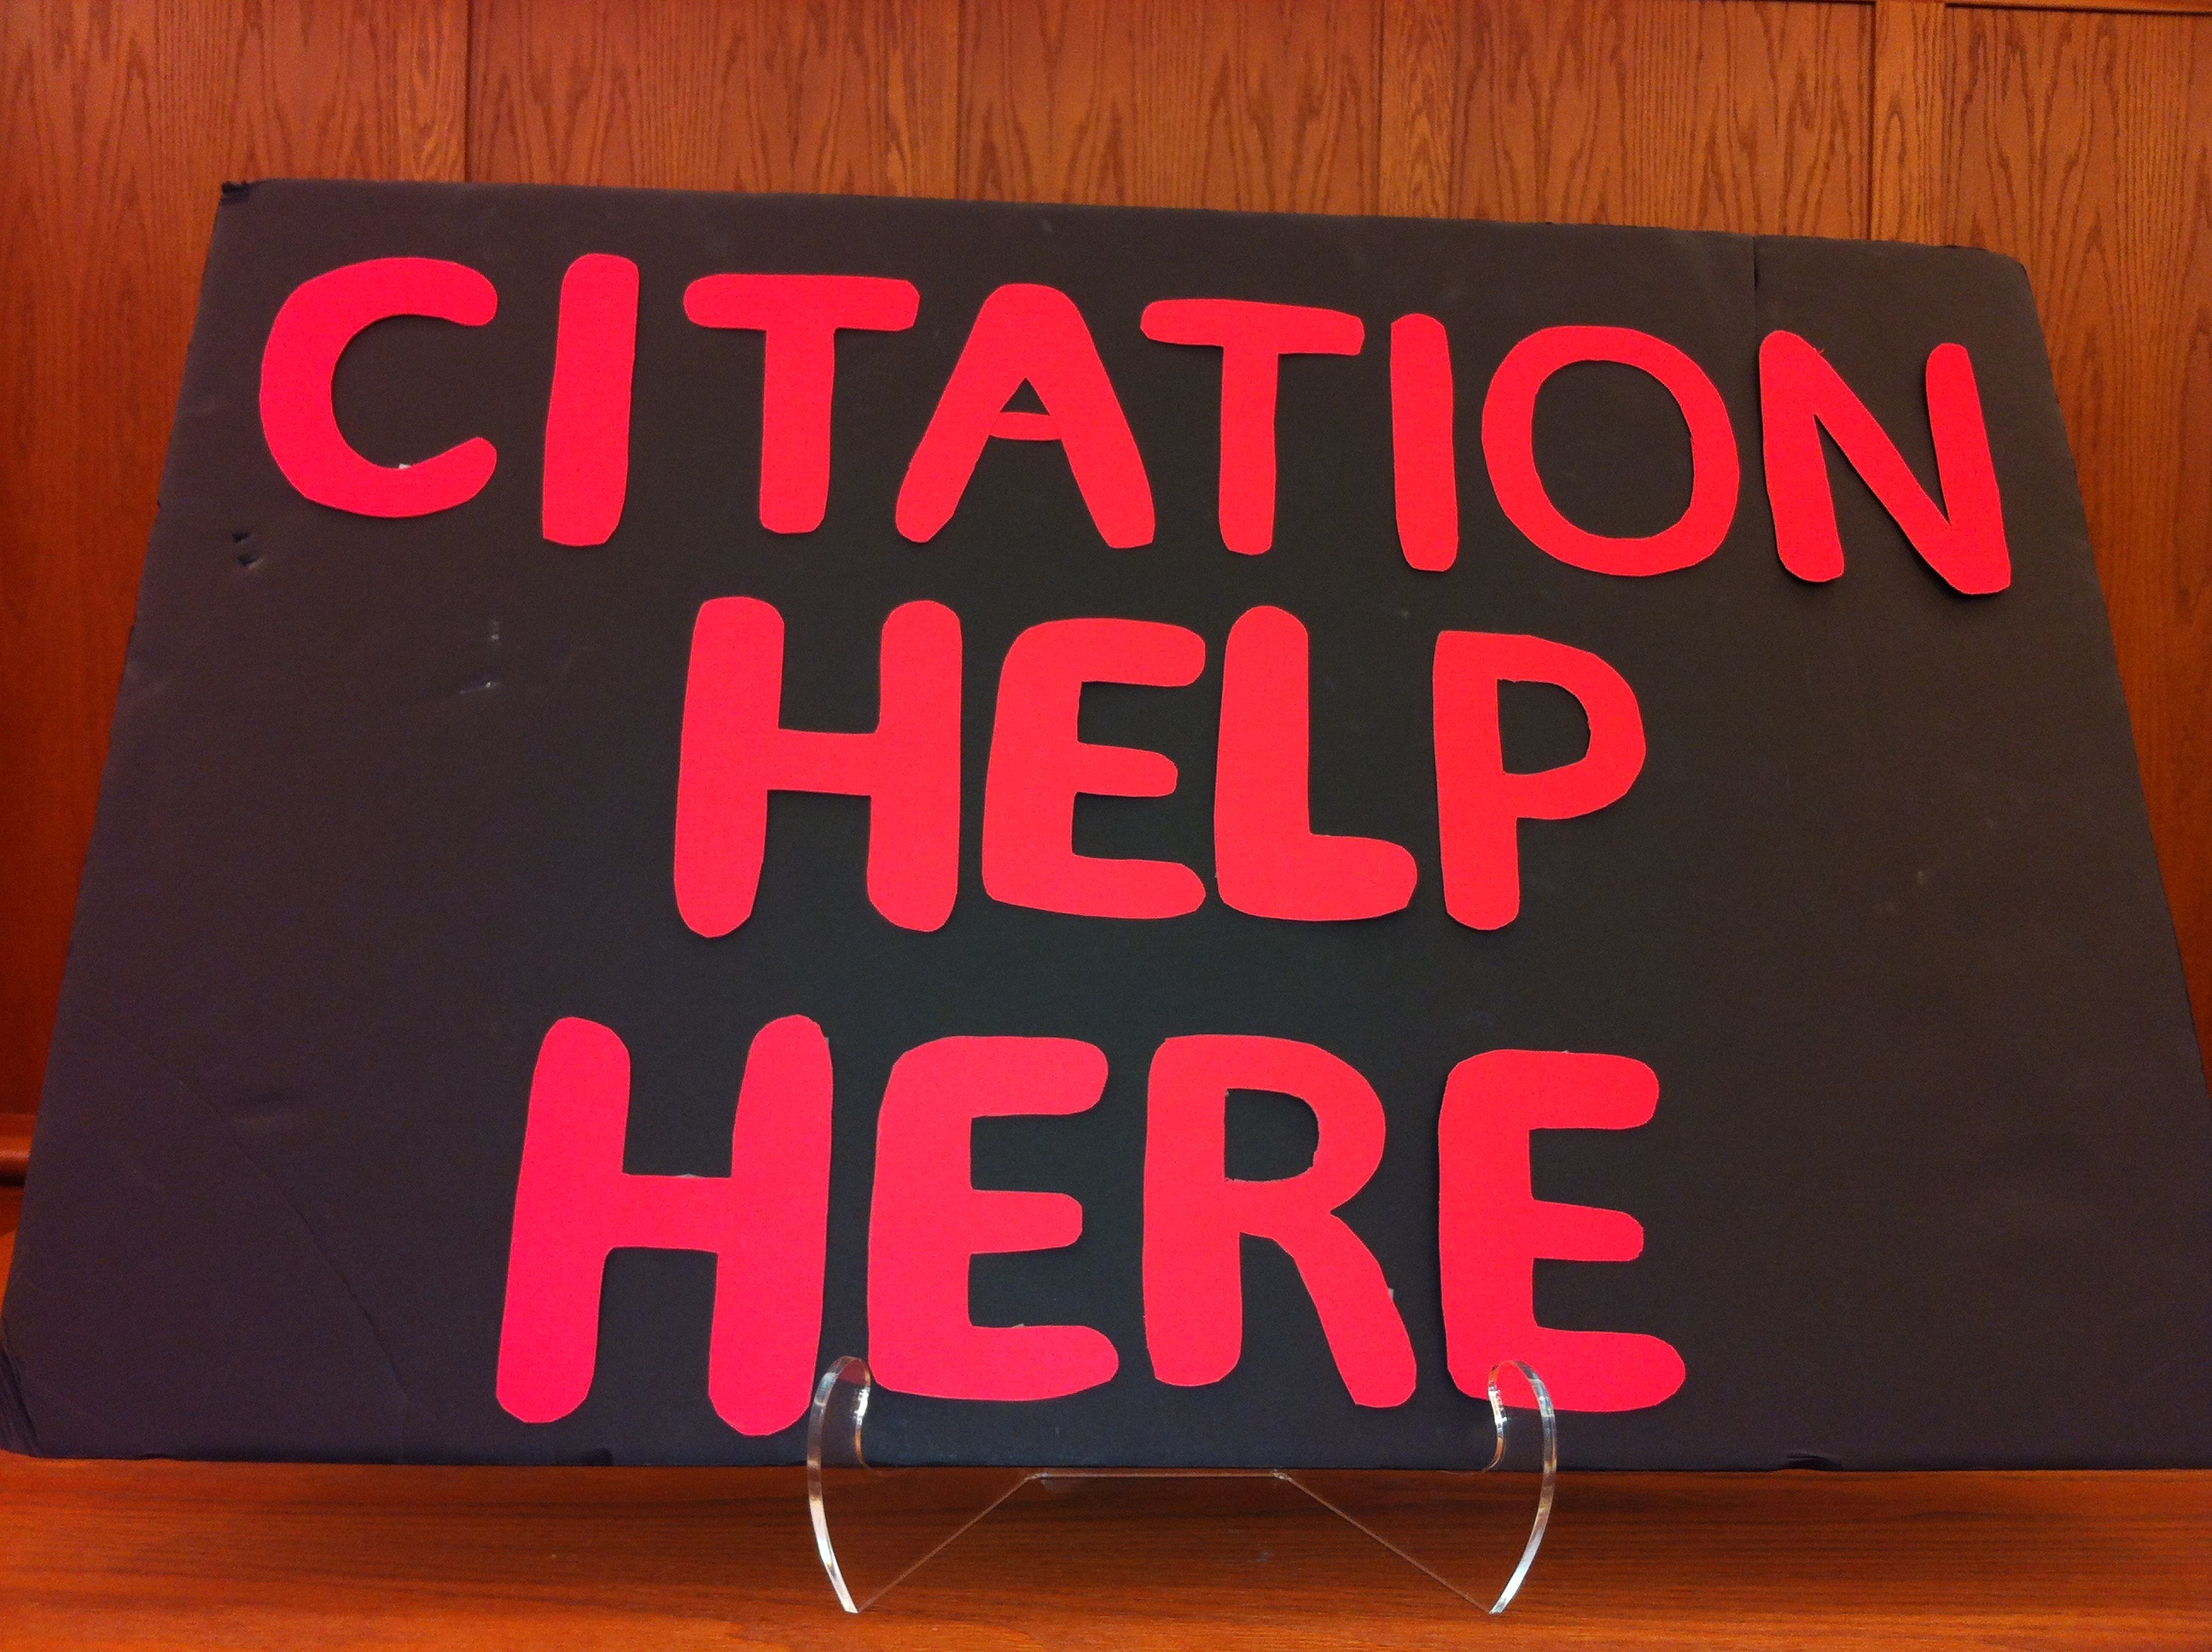 Come to the Reference desk for Citation Assistance